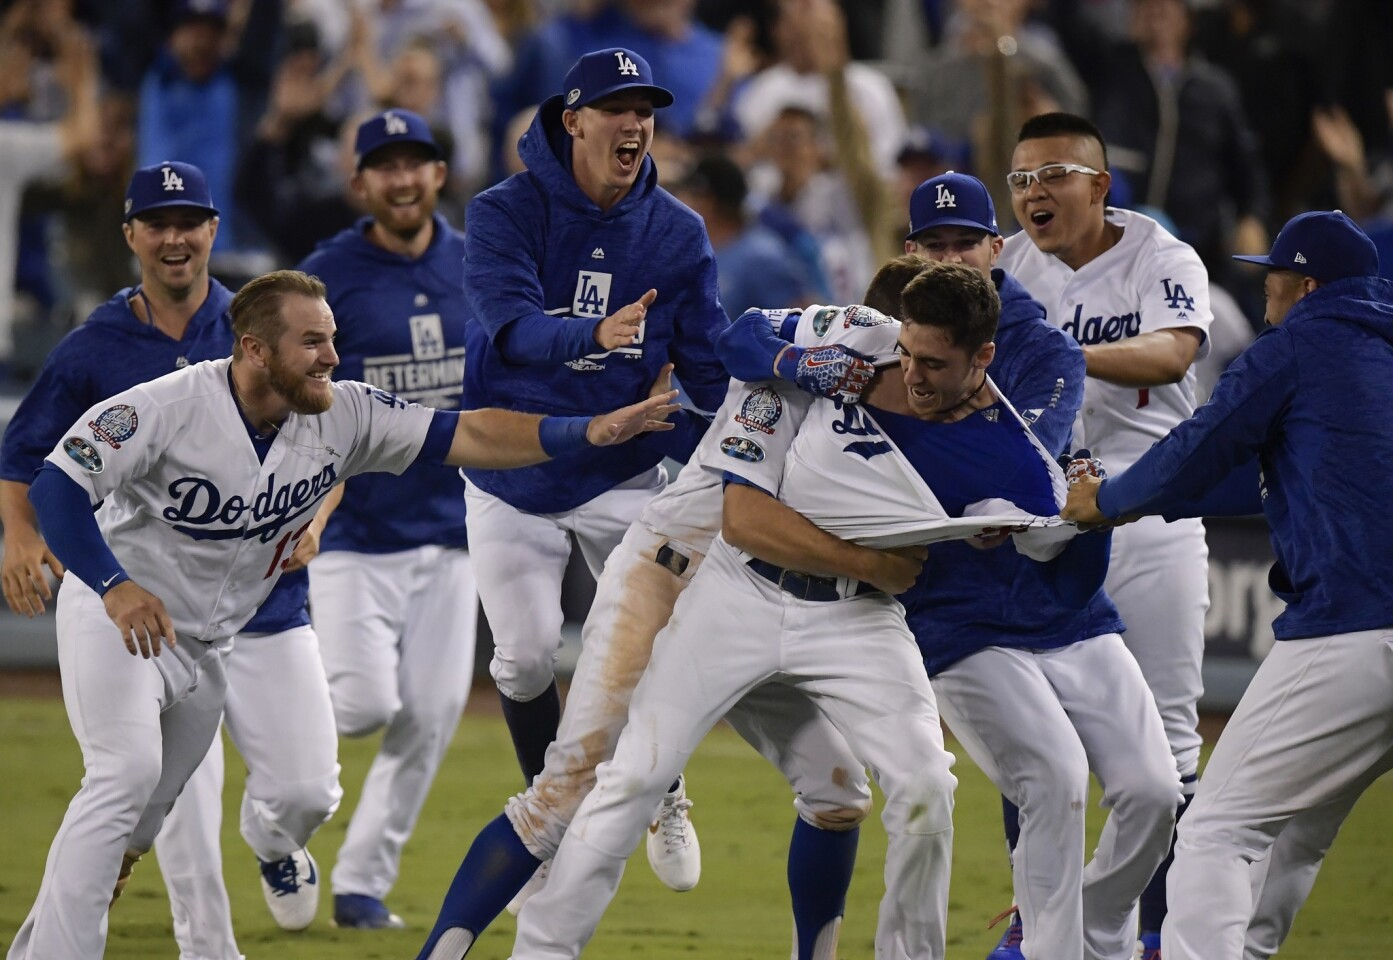 Los Angeles Dodgers' Cody Bellinger celebrates after hitting a walk-off hit during the 13th inning of Game 4 of the National League Championship Series baseball game against the Milwaukee Brewers Tuesday, Oct. 16, 2018, in Los Angeles. The Dodgers won 2-1 to tie the series at 2-2. (AP Photo/Mark J. Terrill)